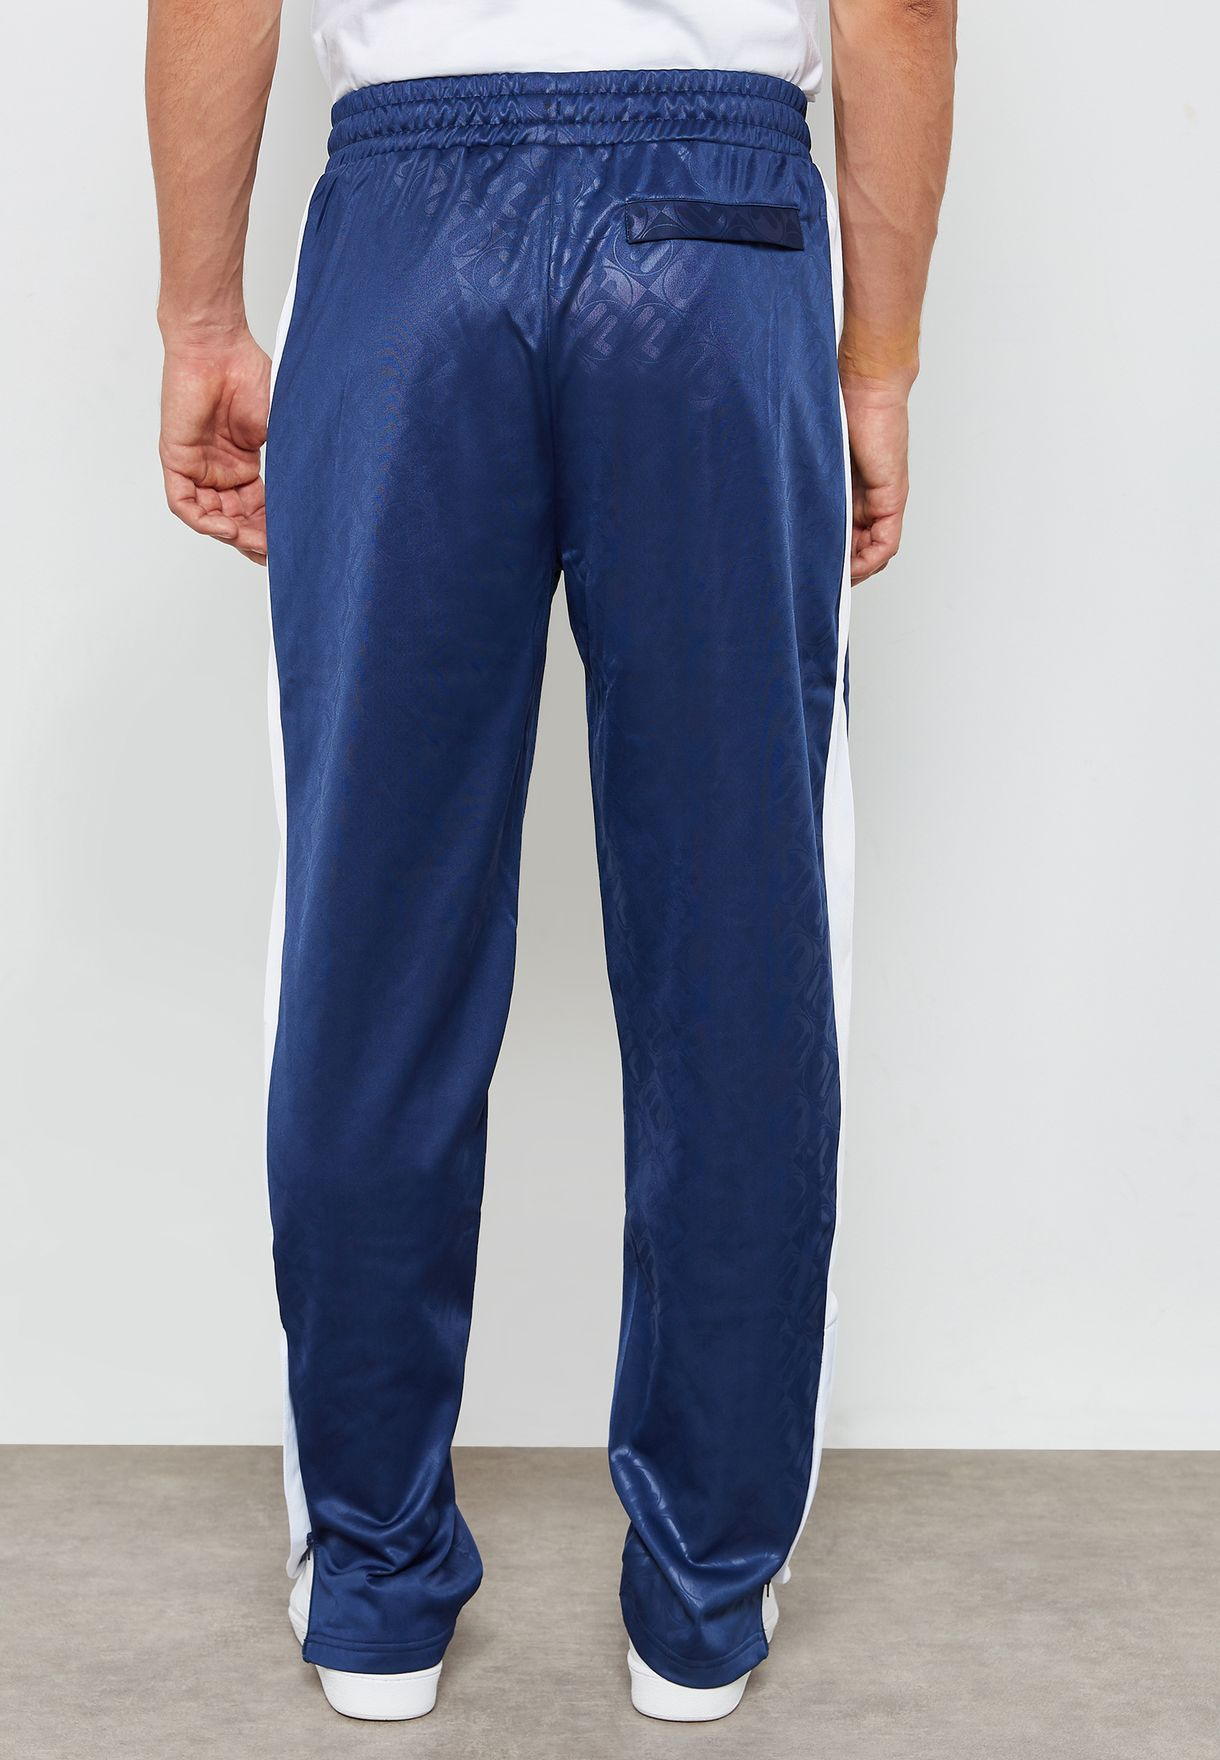 Reggie AOP Sweatpants